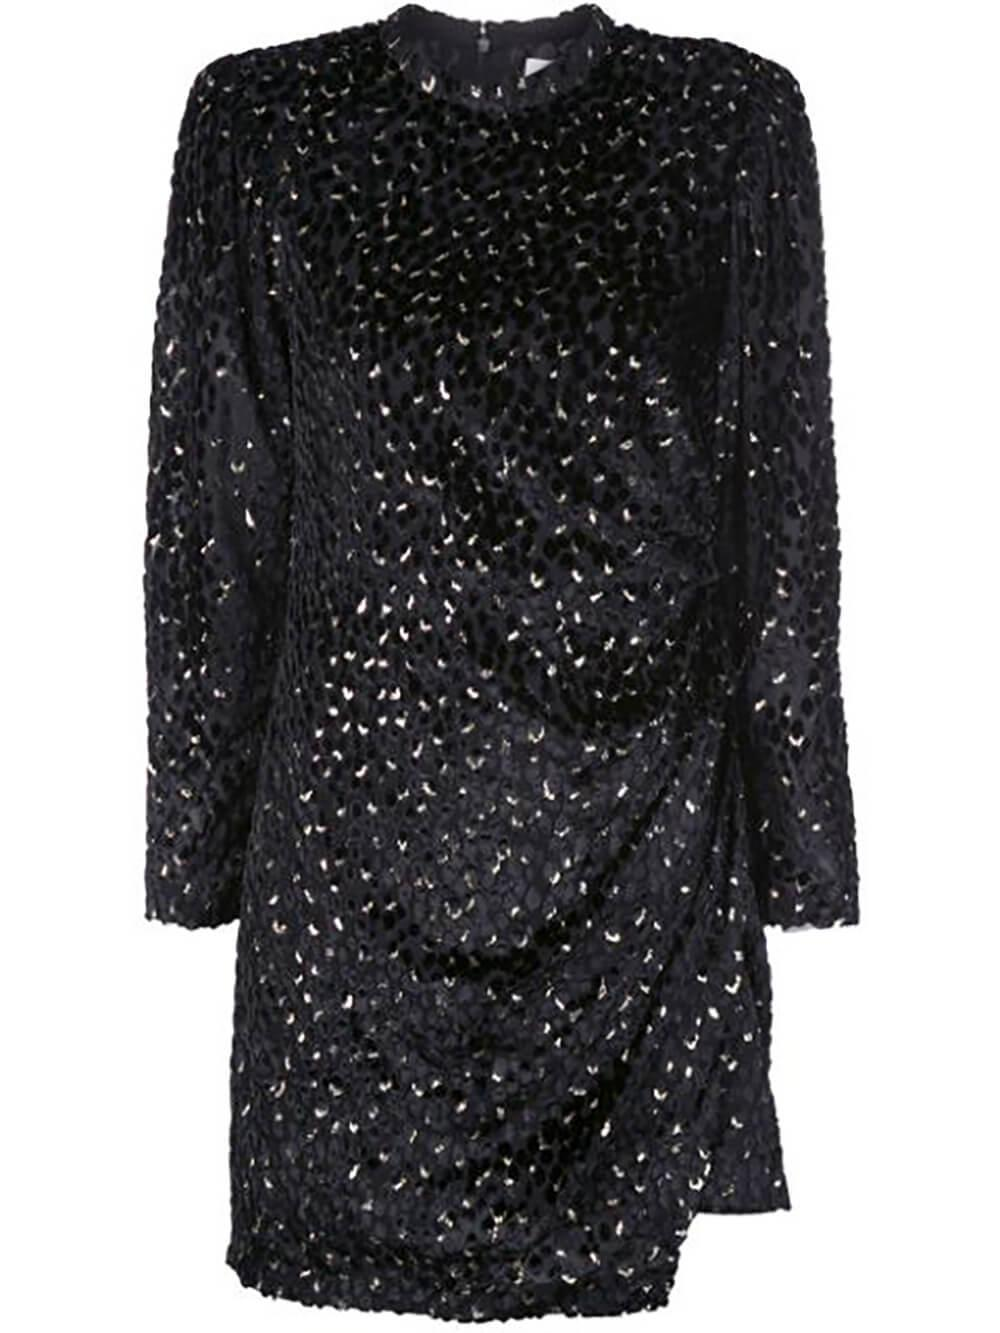 Jane Long Sleeve Sparkle Dress